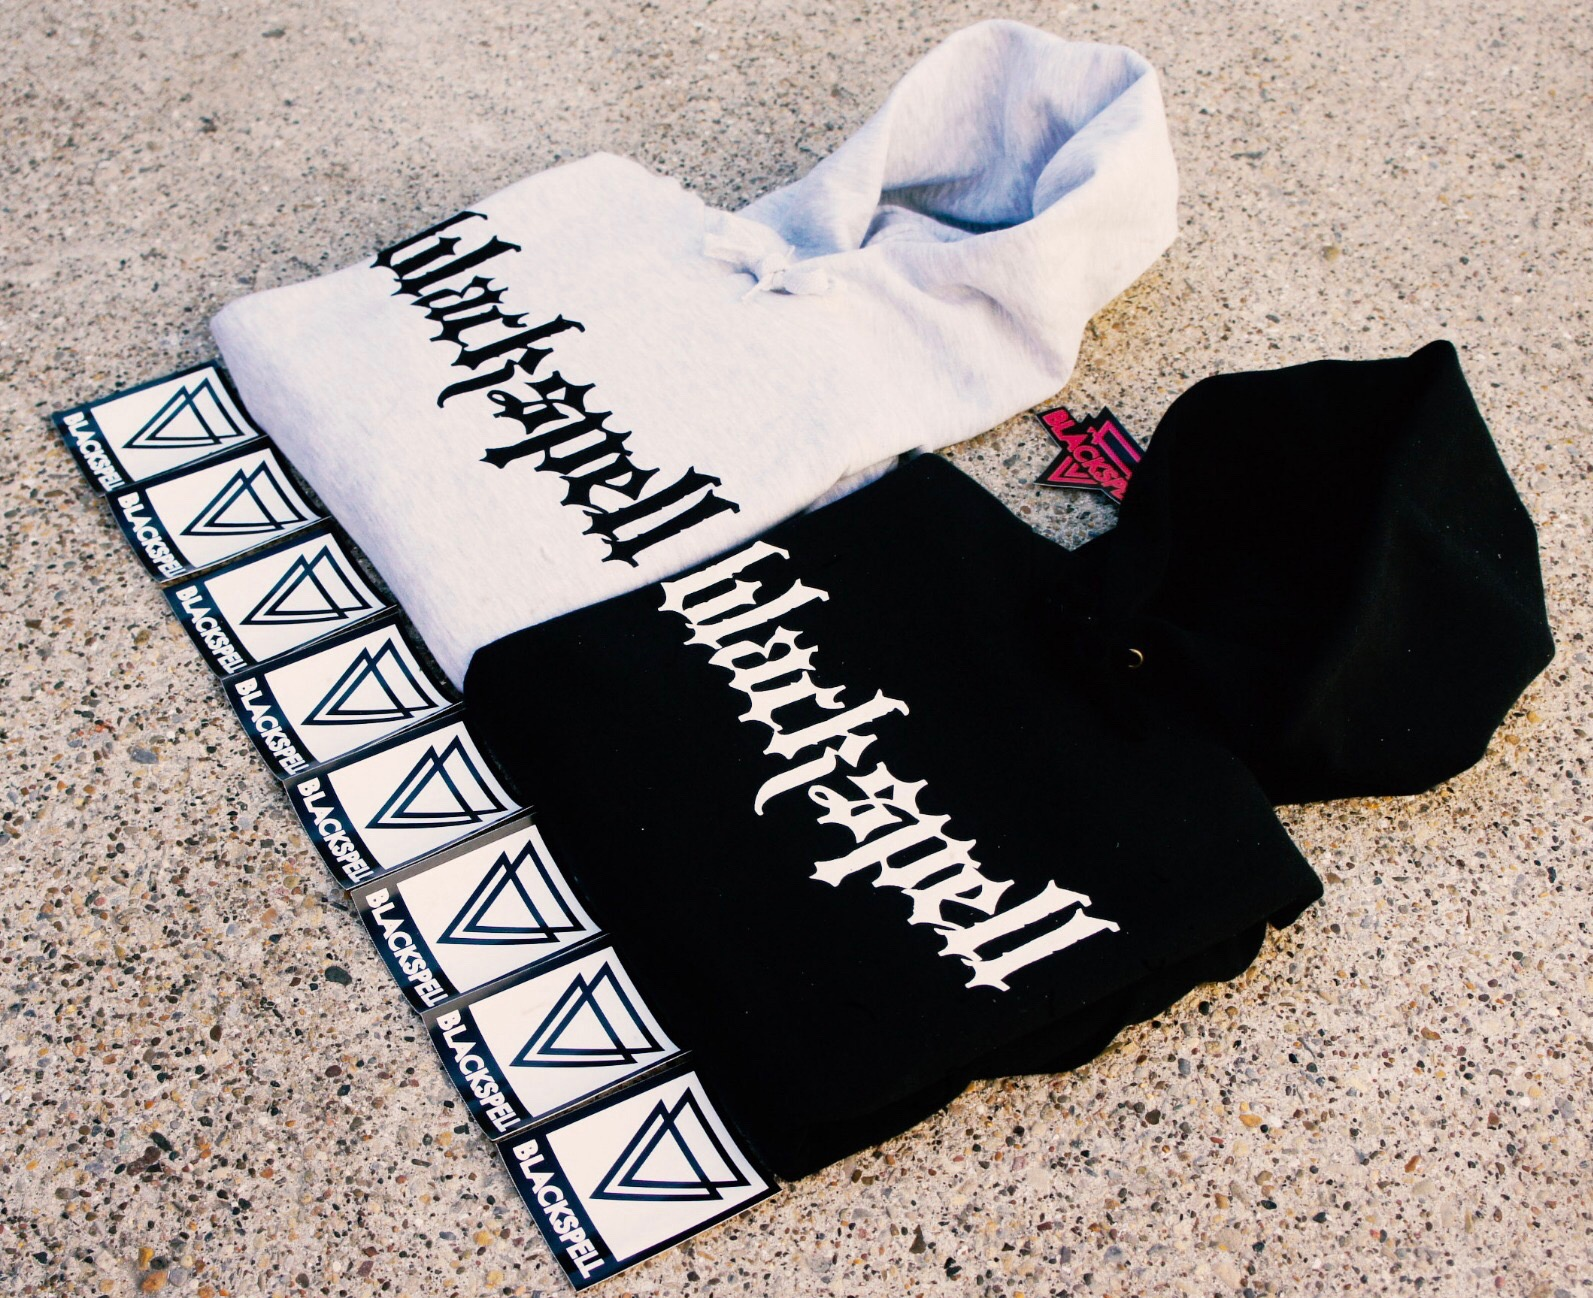 Bank Holiday GIVEAWAY | WIN A SCRIPT HOODY + STICKER PACK